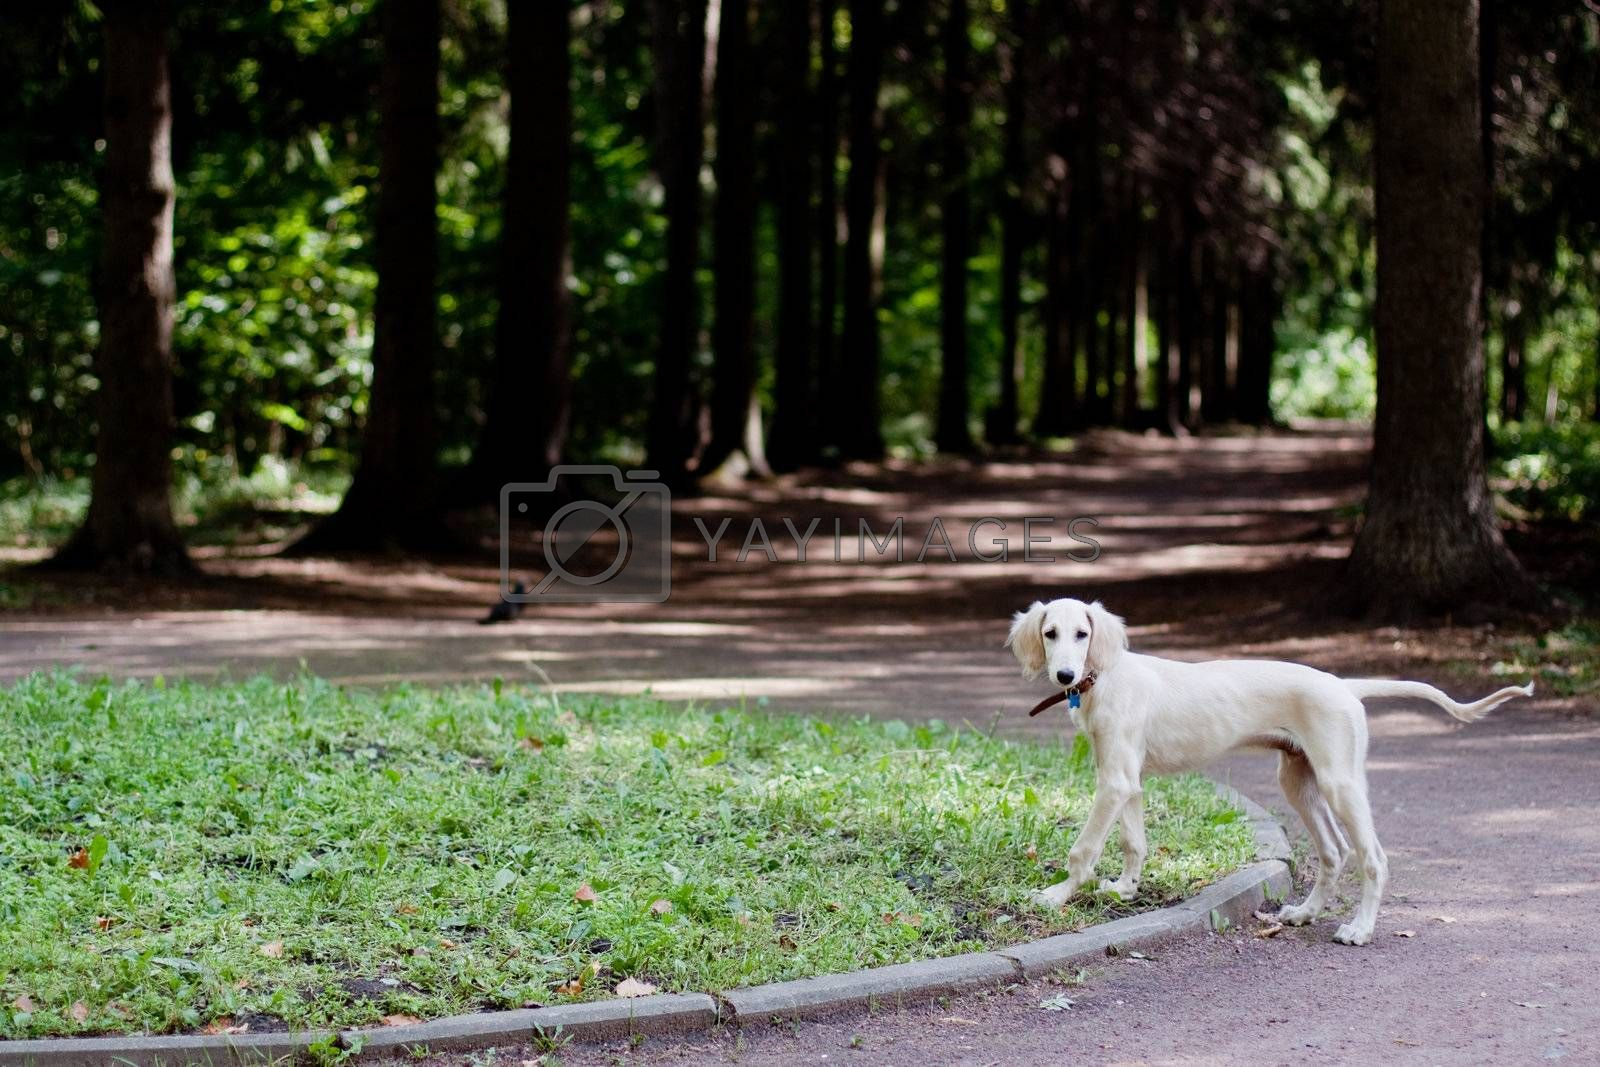 A standing saluki pup in a park